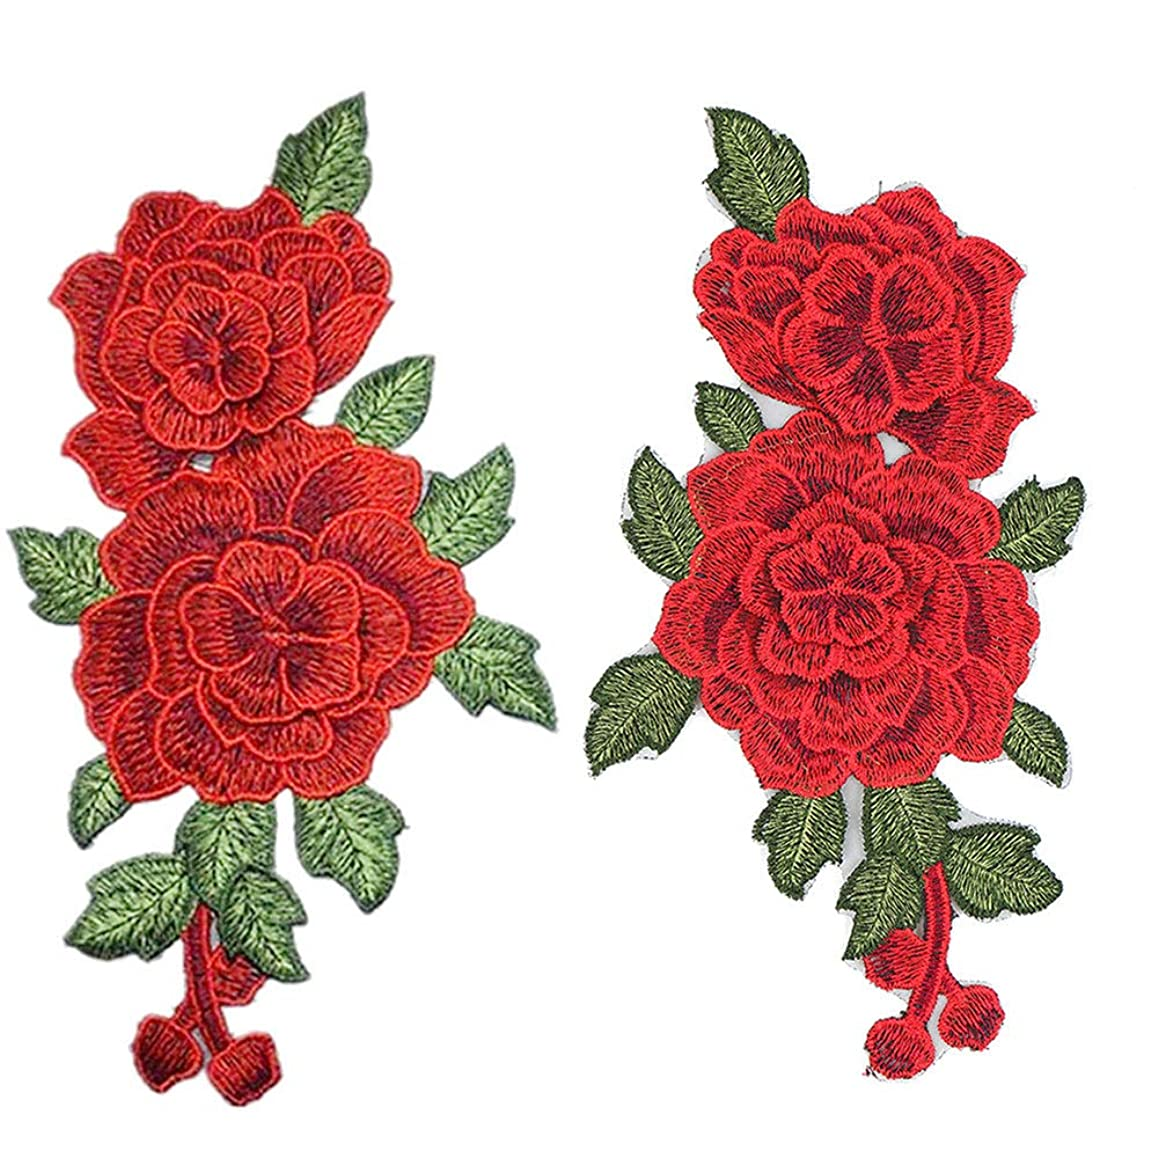 Red Rose Cloth Paste Embroidered Sewing On Patch Ornaments Flower Iron On Stickers for Clothes Badges Sewing Fabric Applique Accessory 2 Pcs